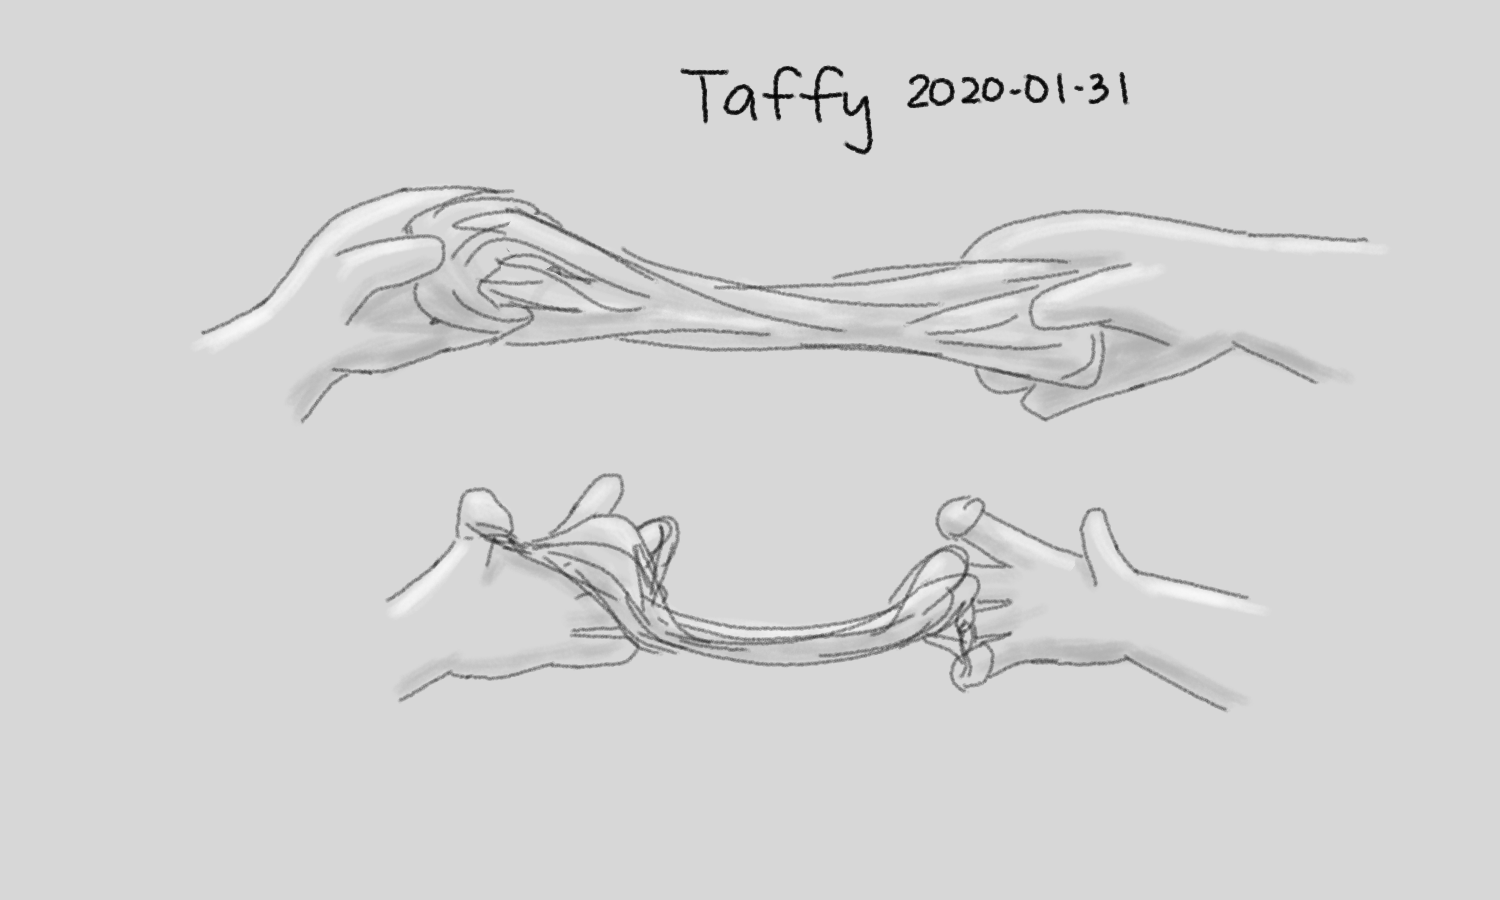 2020-01-31g Taffy #moment #sketch.png